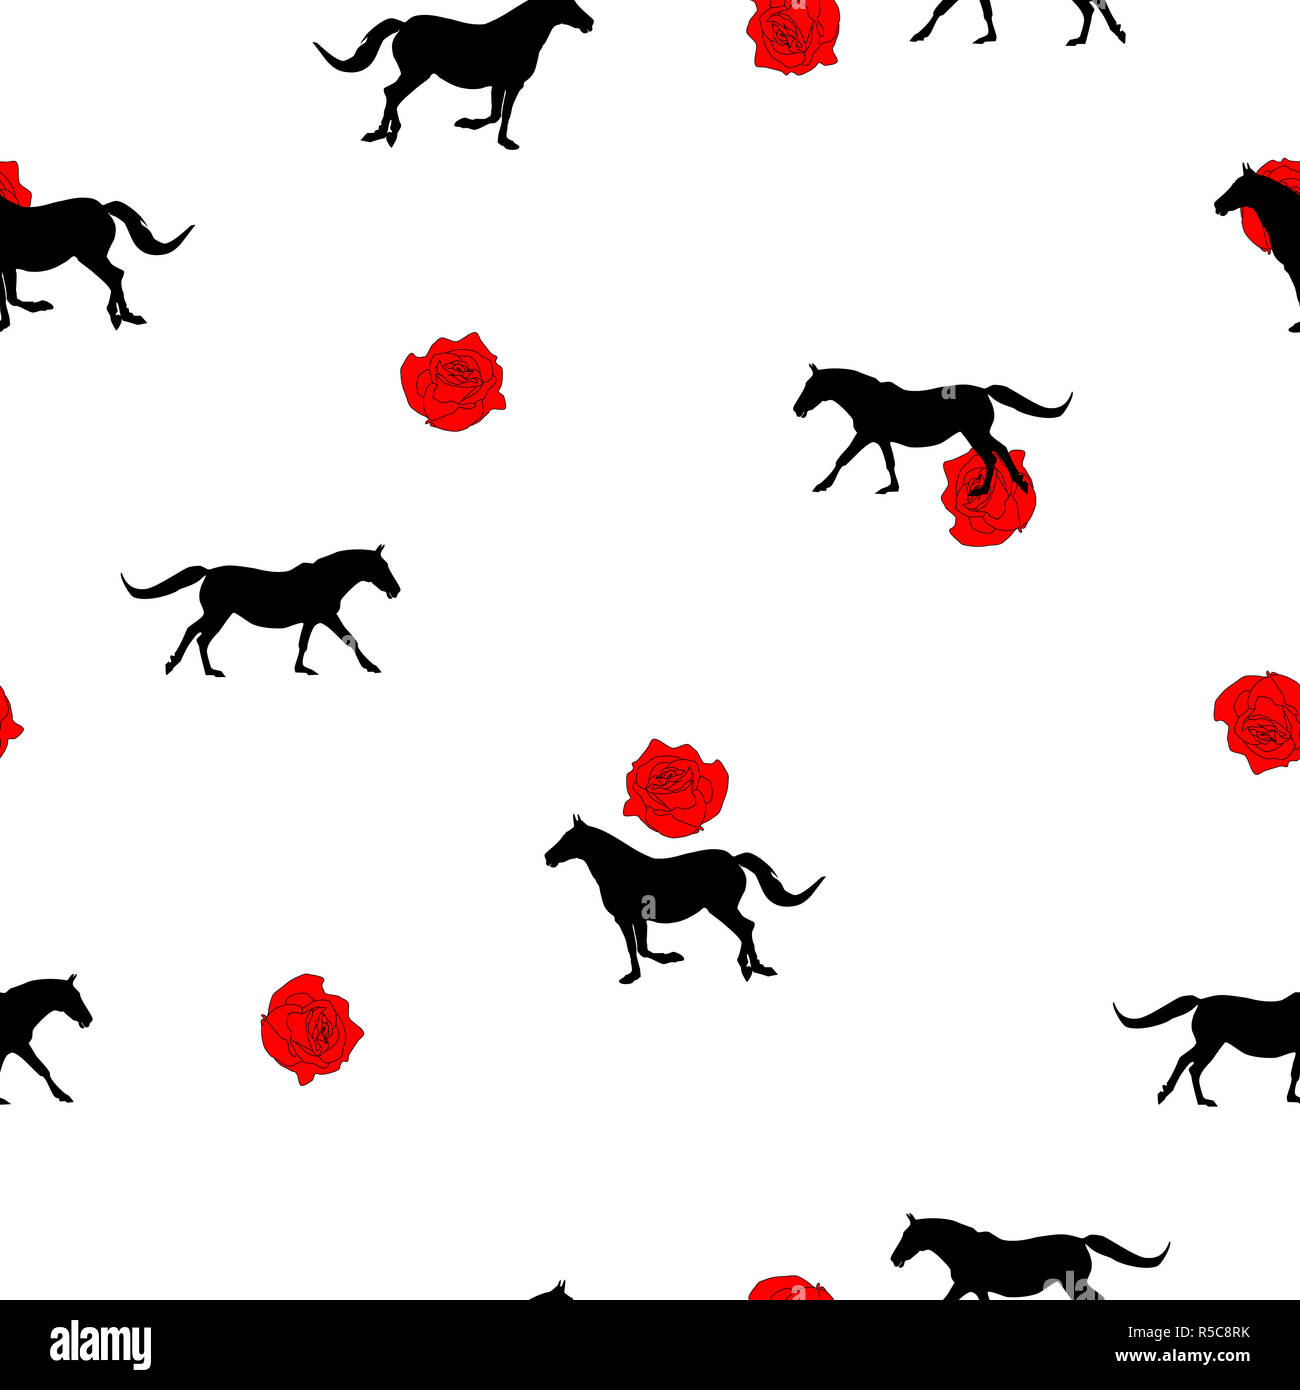 Seamless Wild Animals Pattern Black Horses Silhouette And Small Red Roses On White Background Modern Pretty Feminine Floral Print Illustration Horse Stock Photo Alamy